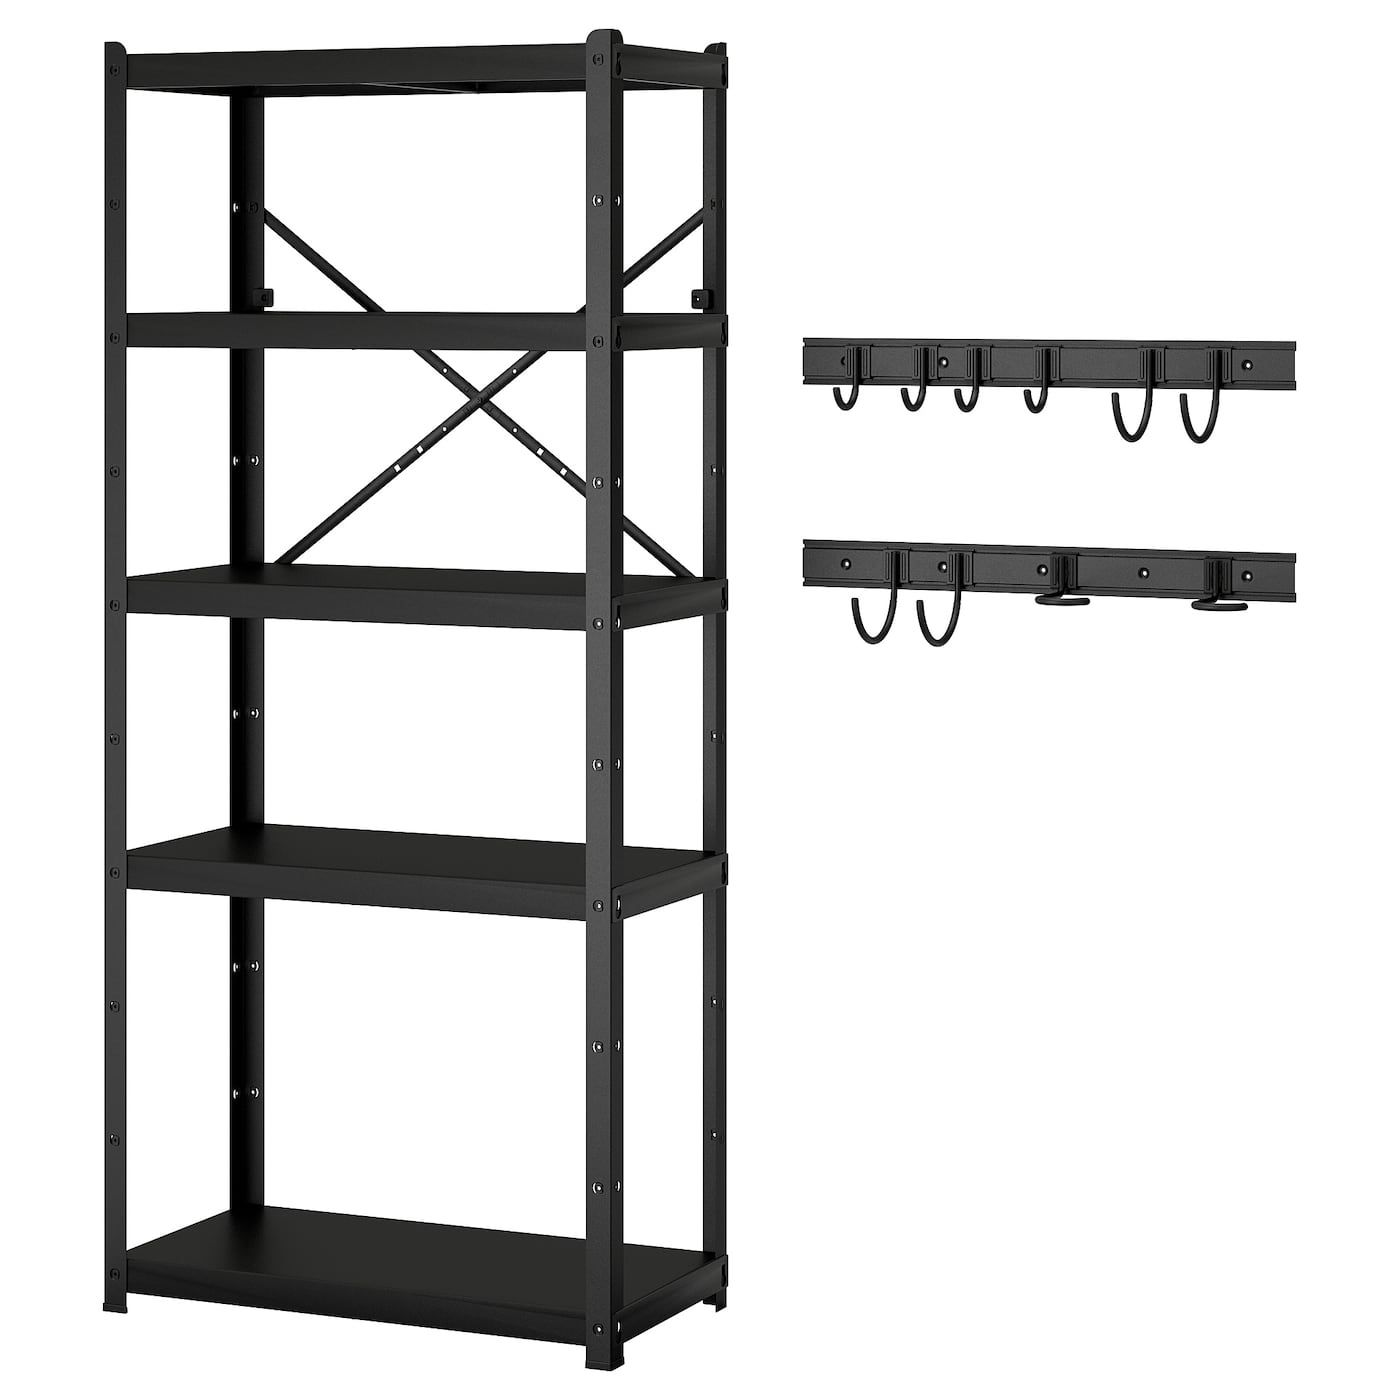 Brandur Bror Shelving Unit W 2 Rails 10 Hooks Shop Ikea Ca Ikea Shelving Unit Ikea The Unit